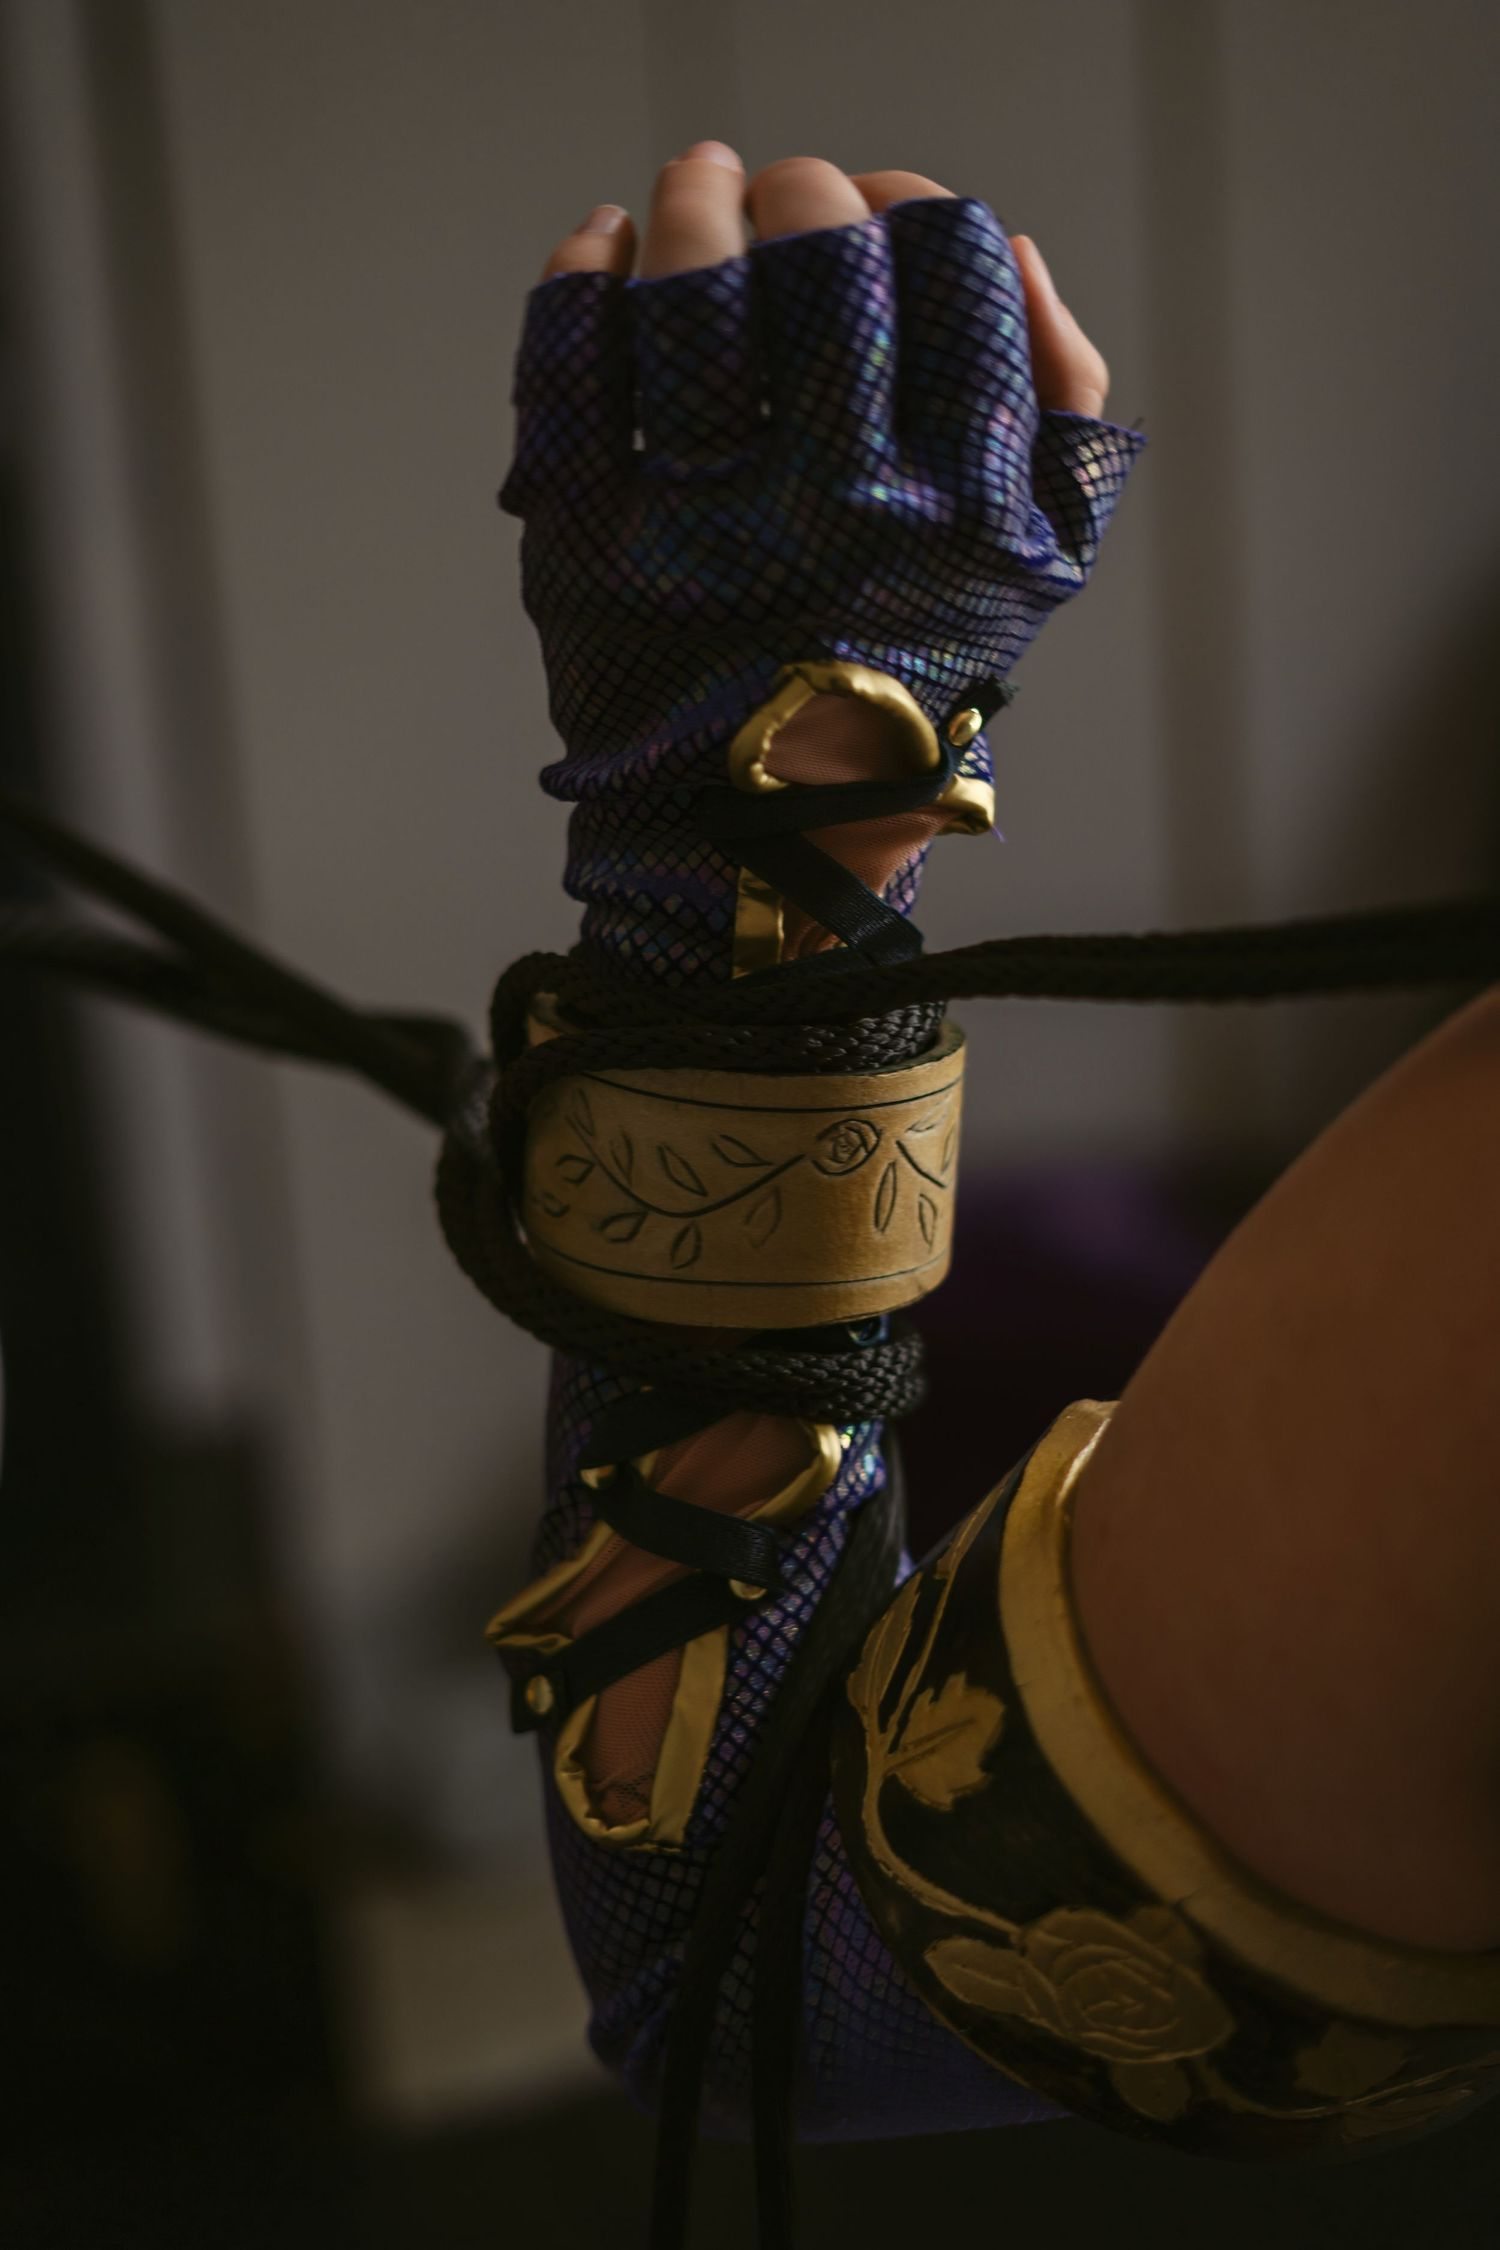 A costumed arm, wearing the glove of Ivy Valentine from Soulcalibur, is bound with ropes pulling in opposite directions